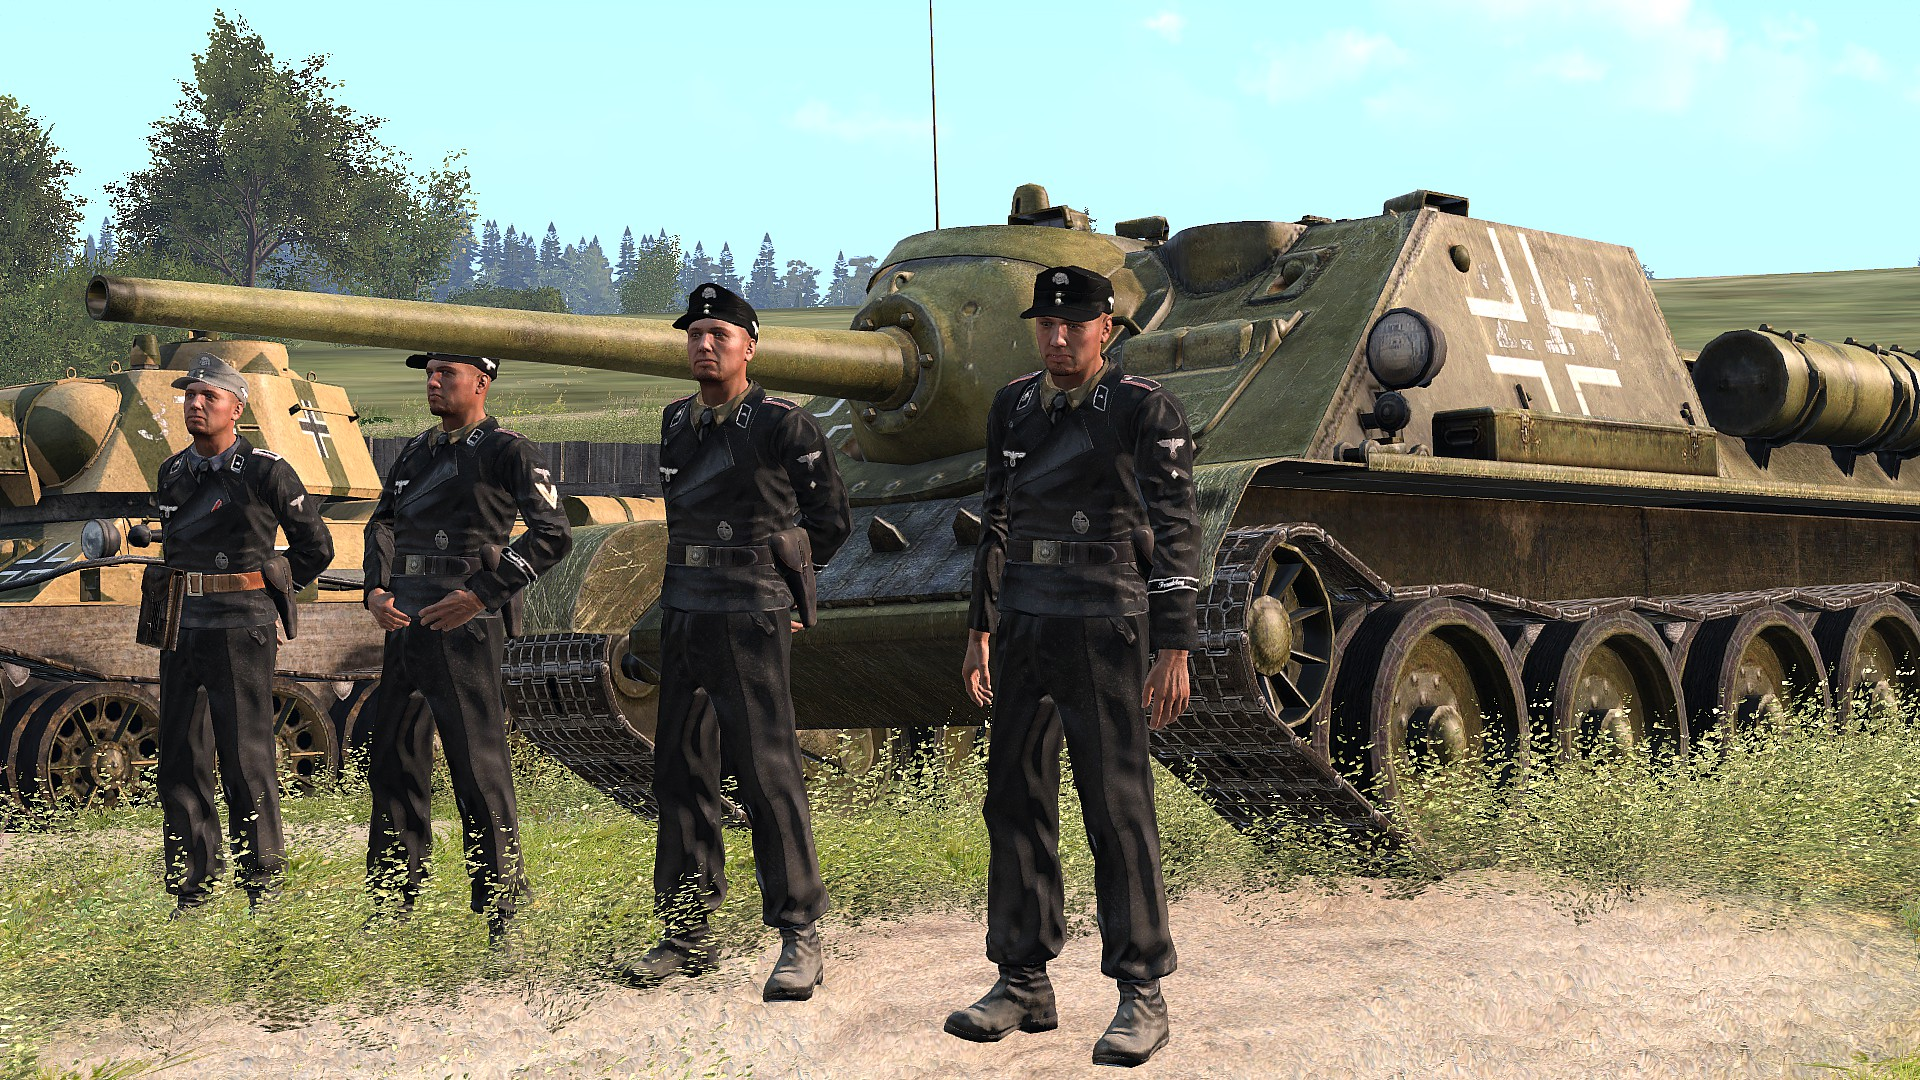 GEISTA3L - A pack of uniforms and vehicles textures for IFA3